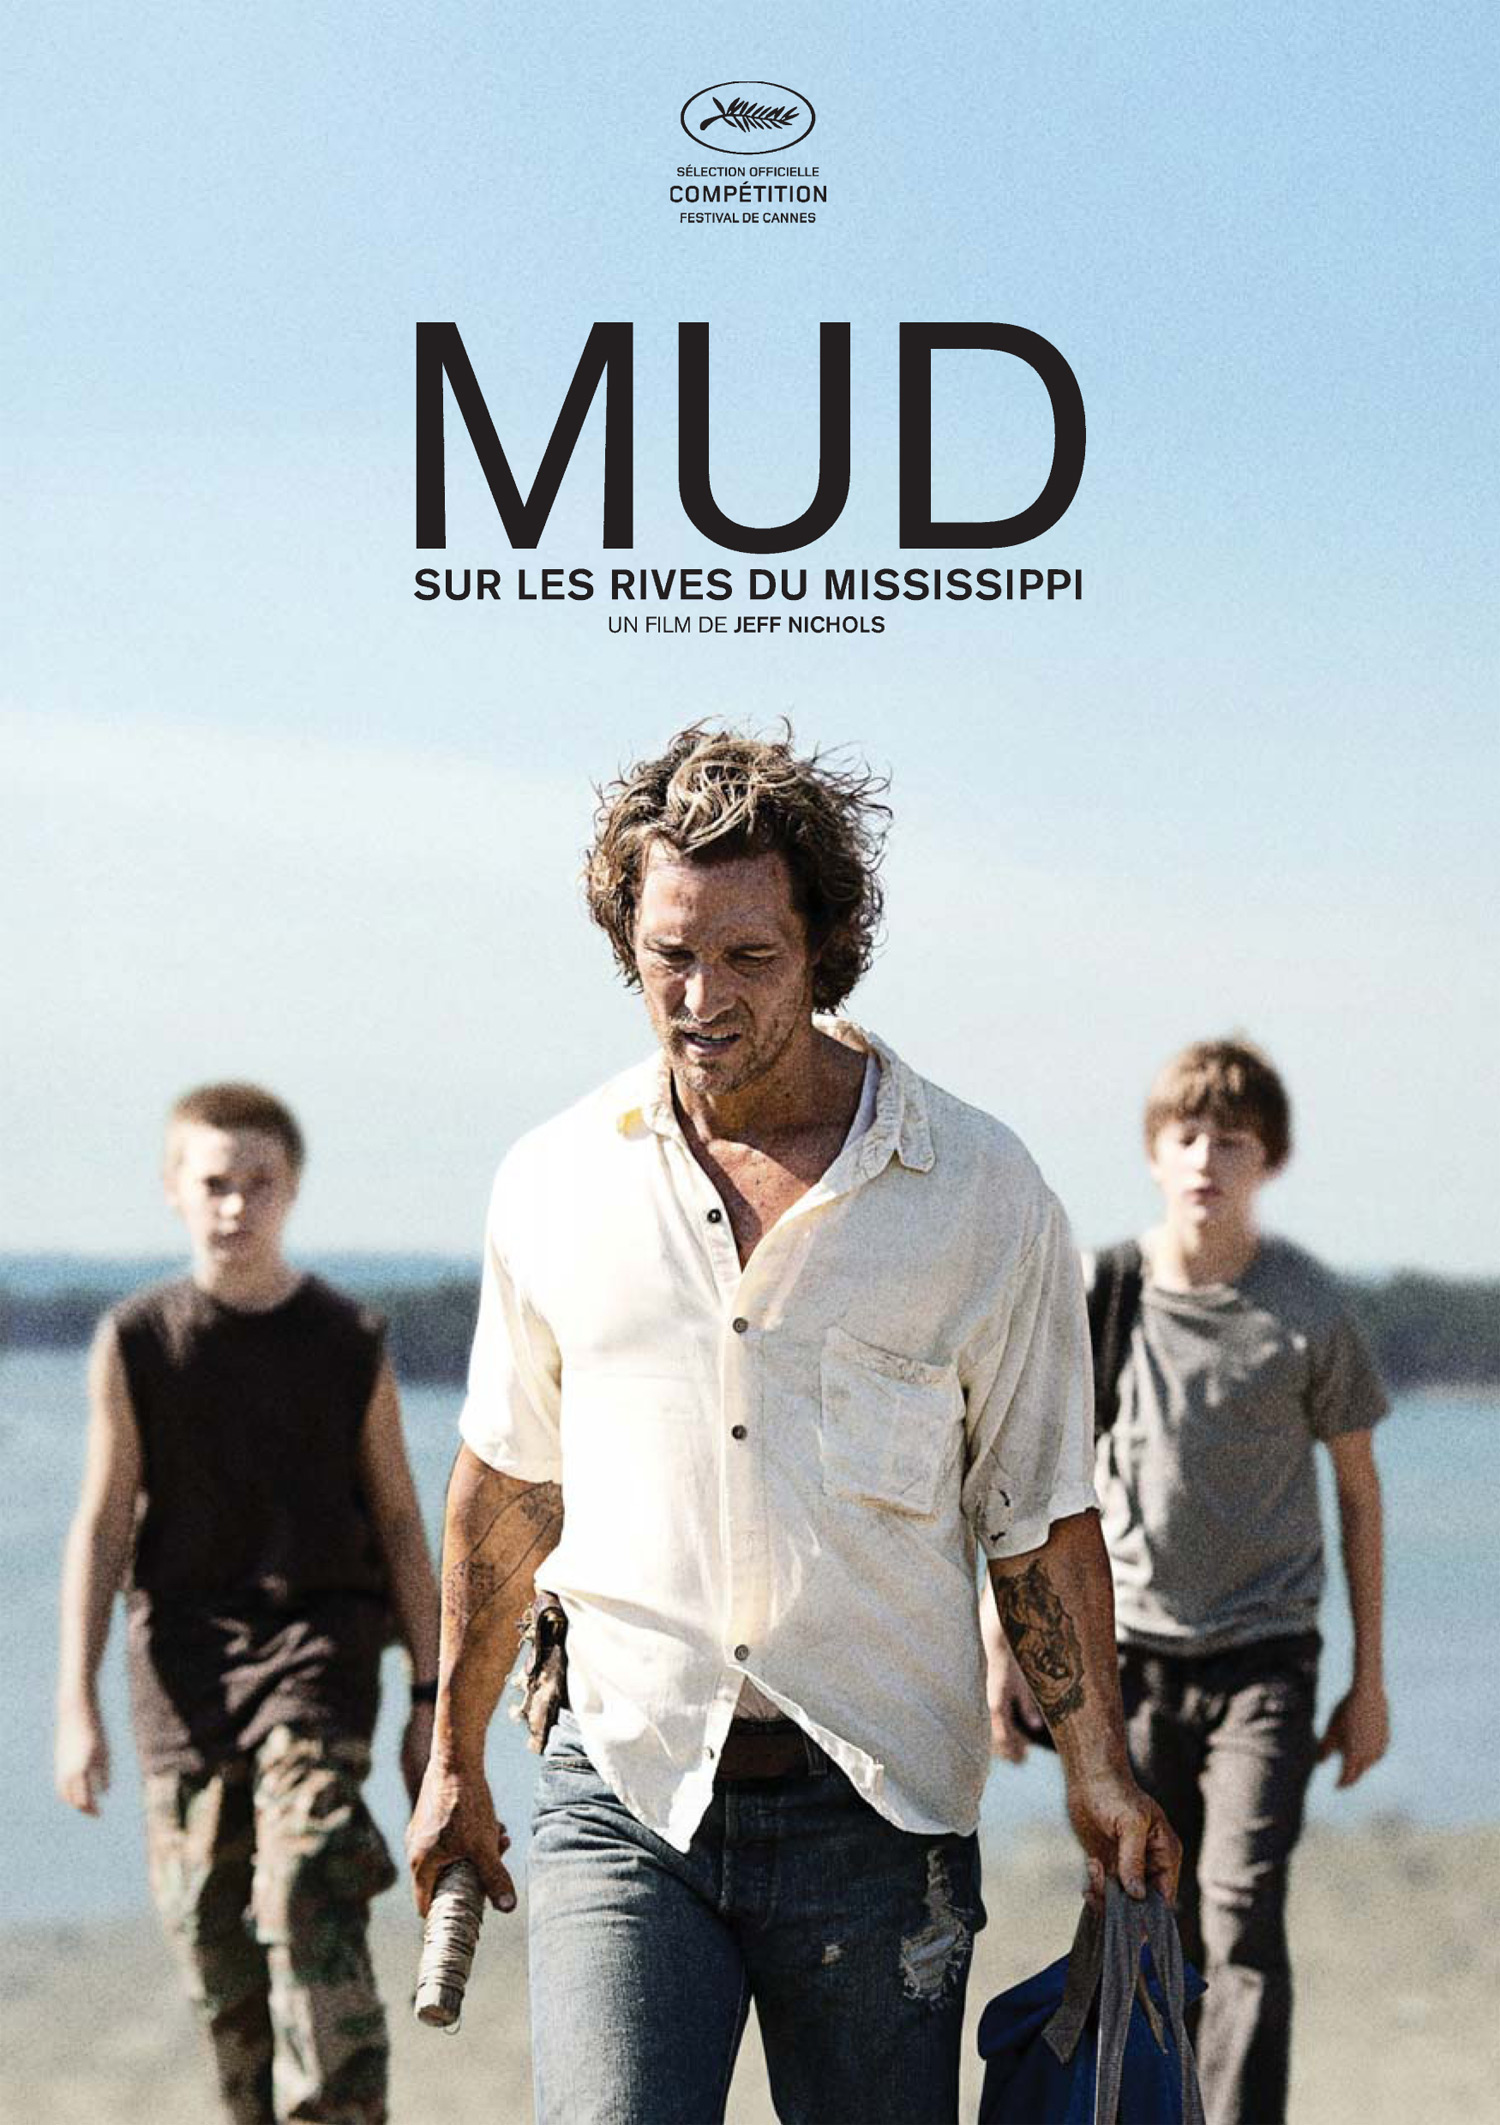 http://cinemateaser.com/wordpress/wp-content/uploads/2013/02/MUD-Poster-FR-HR.jpg